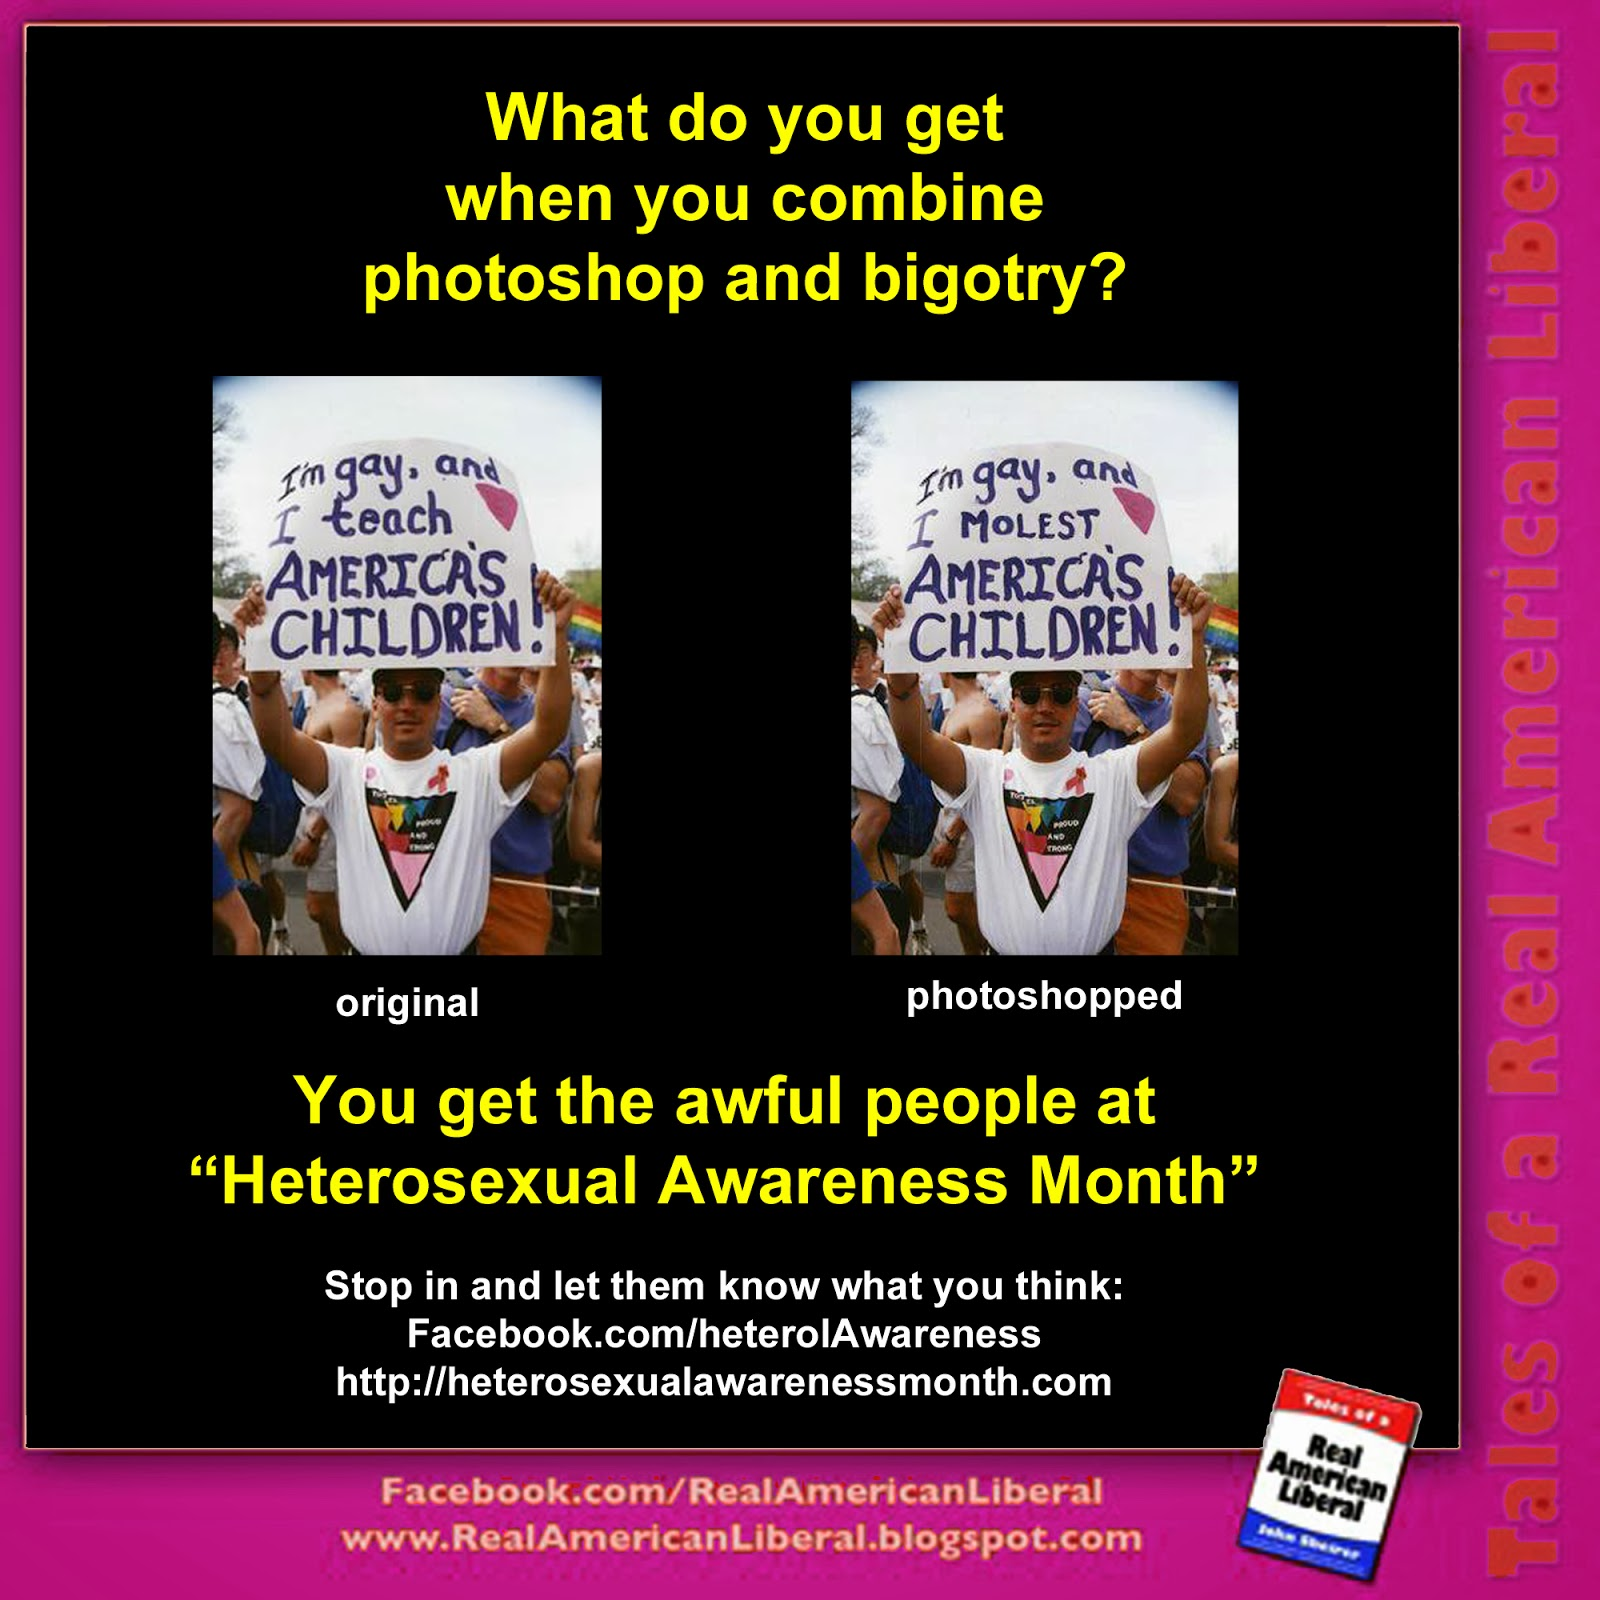 Hetreosexual awareness month